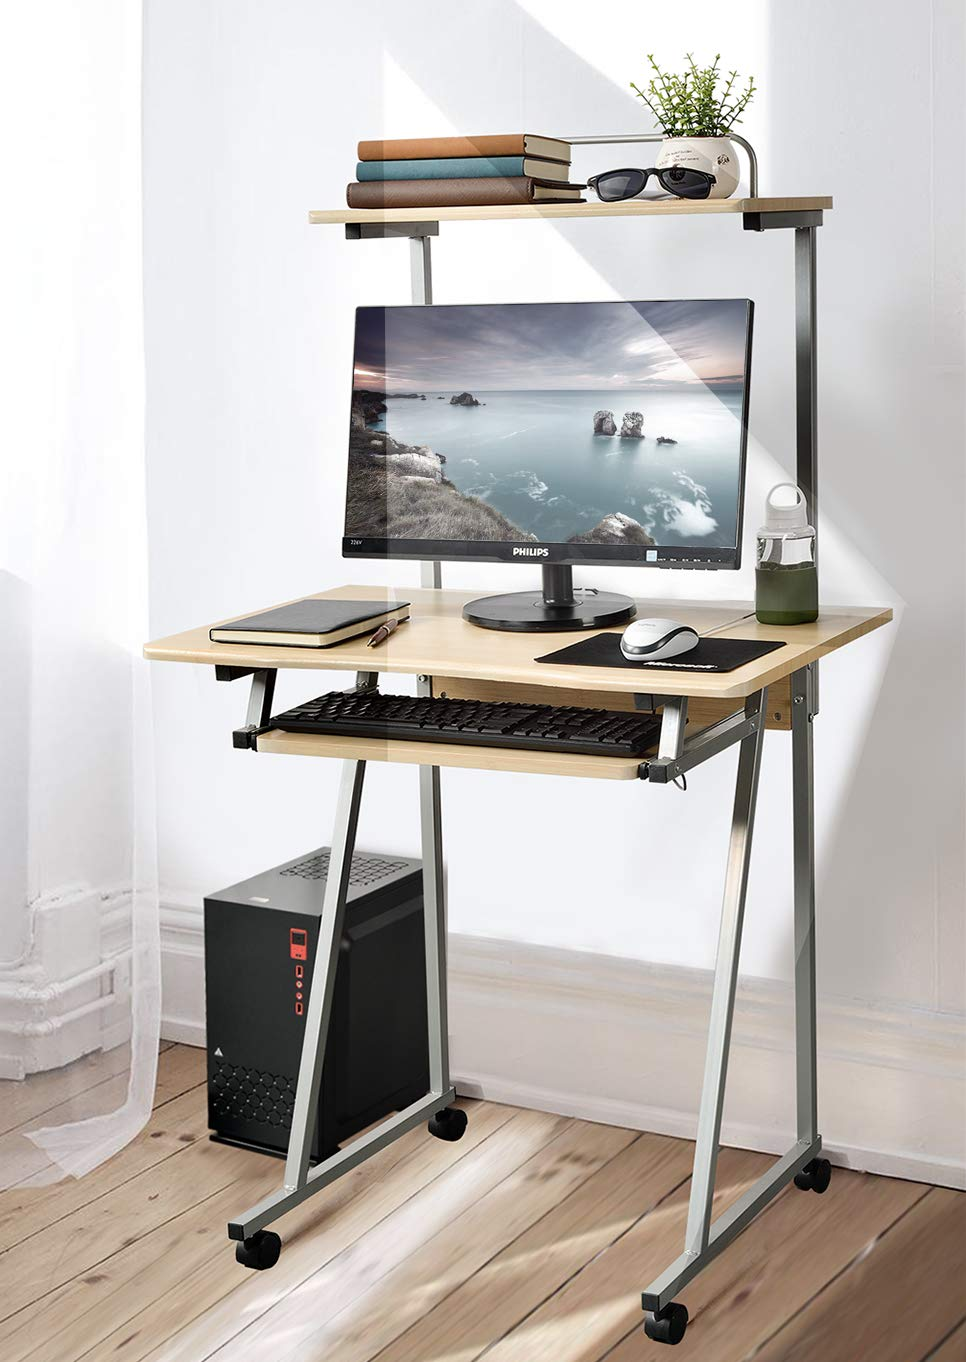 Aingoo Mobile Computer Desk Small Rolling Work Workstation with Printer Shelf and Keyboard Space Beige